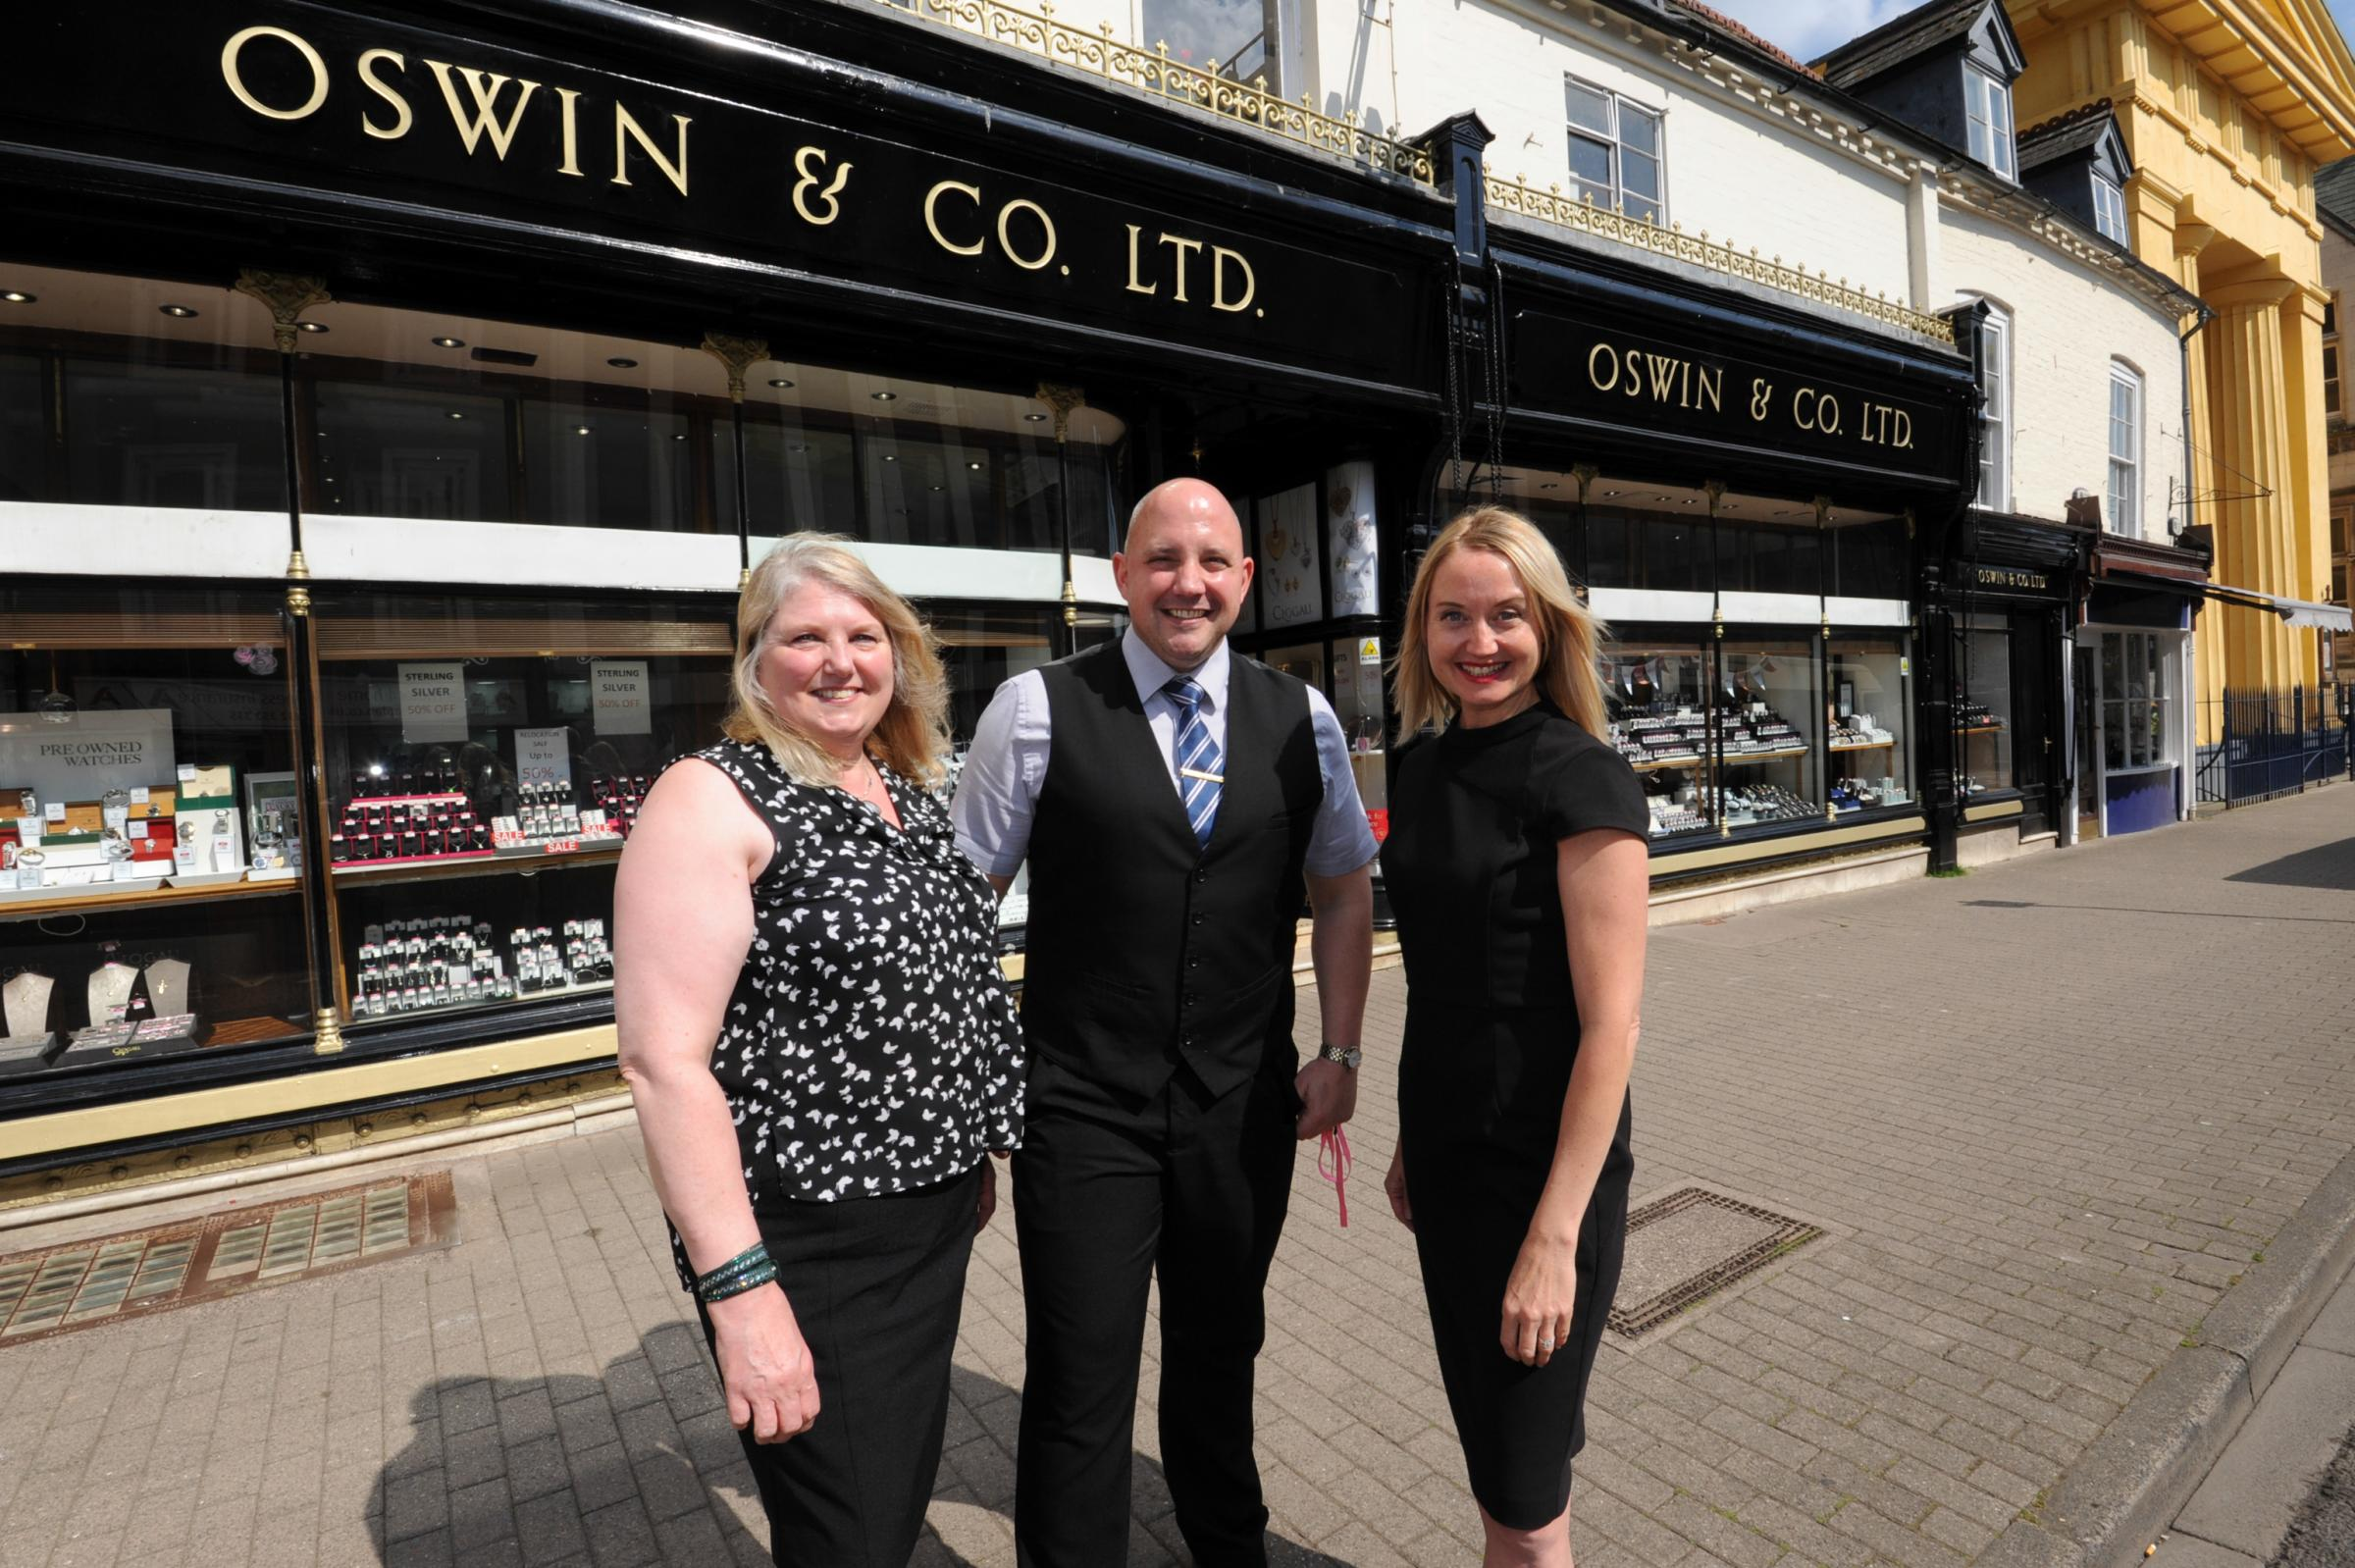 Oswin & Co. jewellers set to move from Broad street to Widemarsh Street, Hereford.